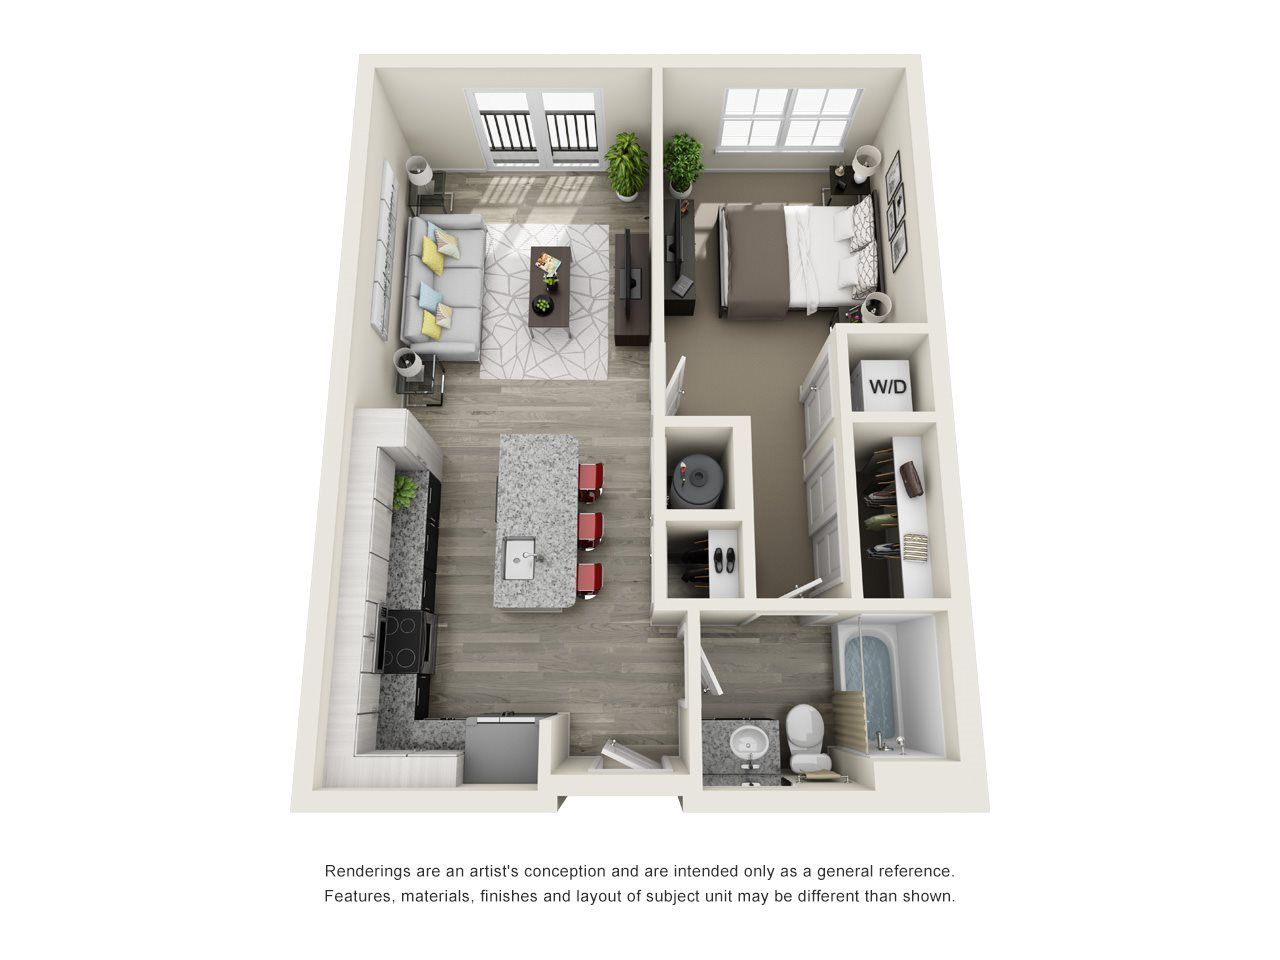 1 Bedroom, 1 Bath 692 sqft Floor Plan 4